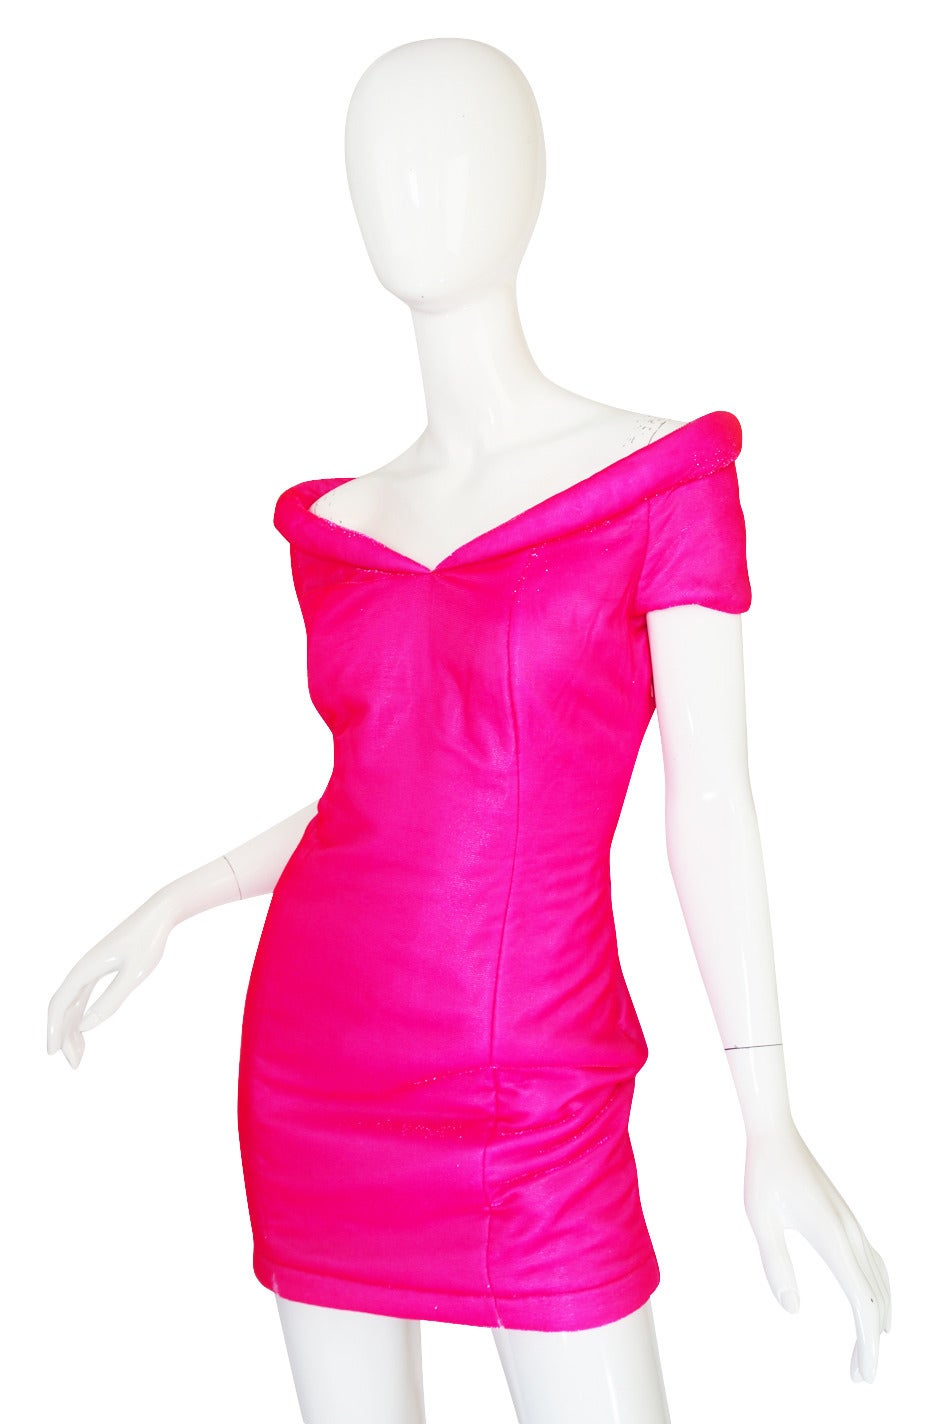 1990s Neon Pink Velvet Padded Rifat Ozbek Dress 3